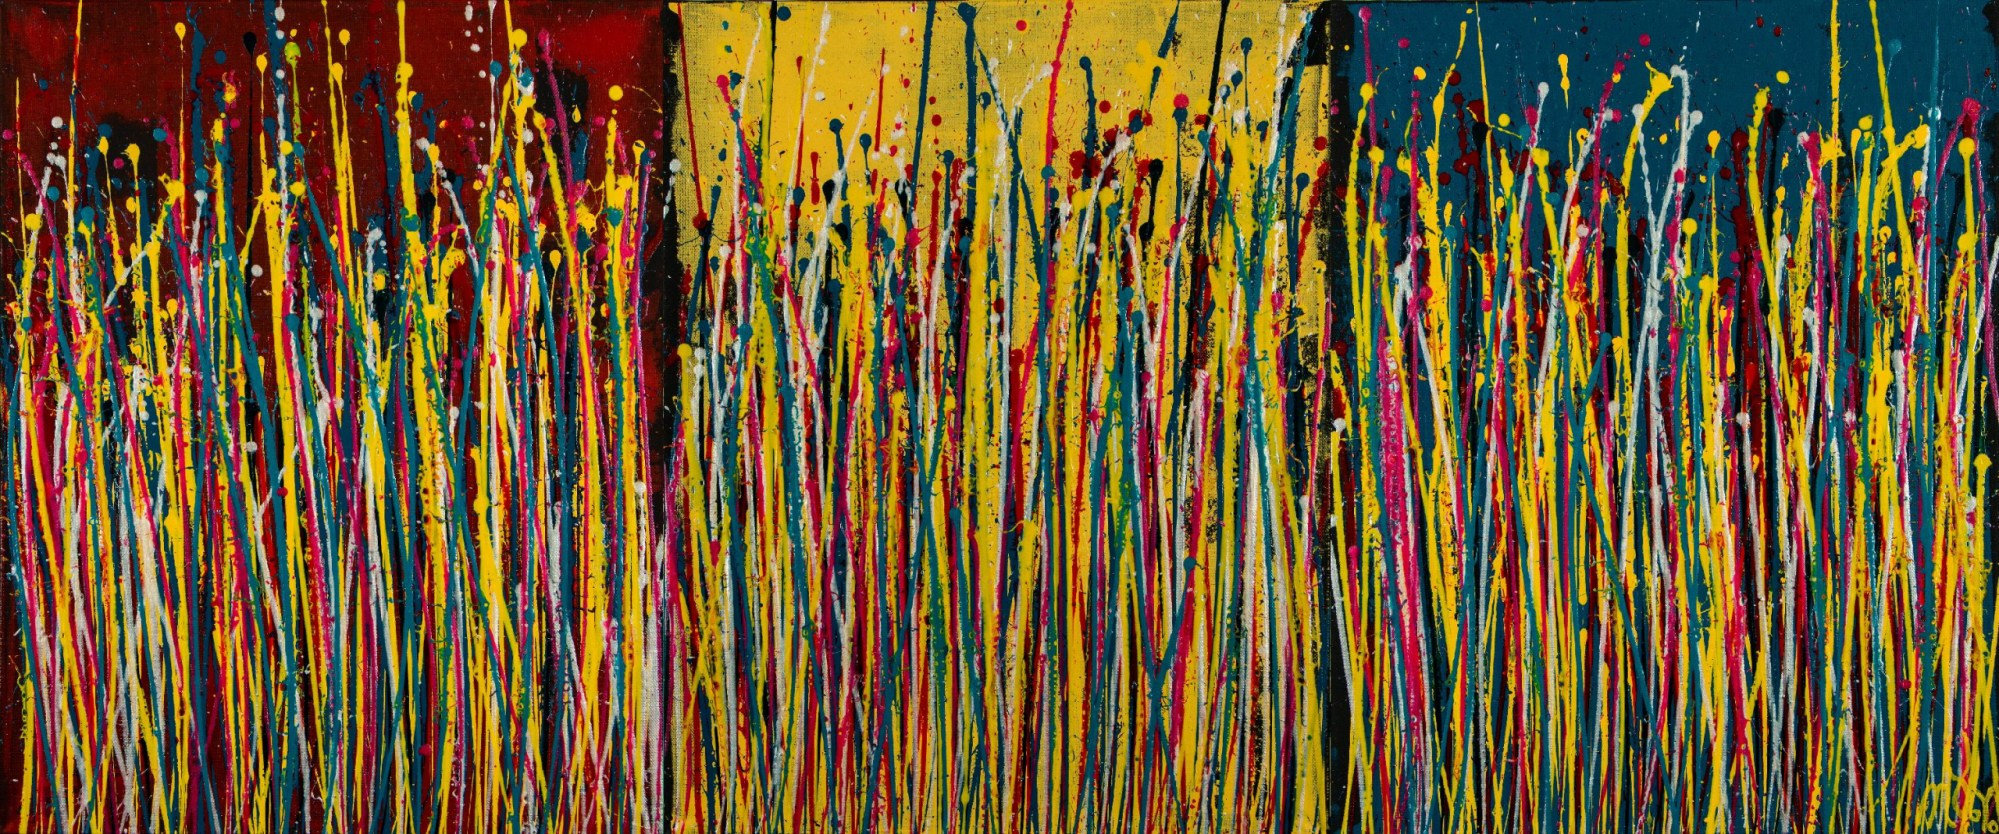 Natures Imagery (Scattering Colors) 2 (2021) / Triptych / Artist Nestor Toro